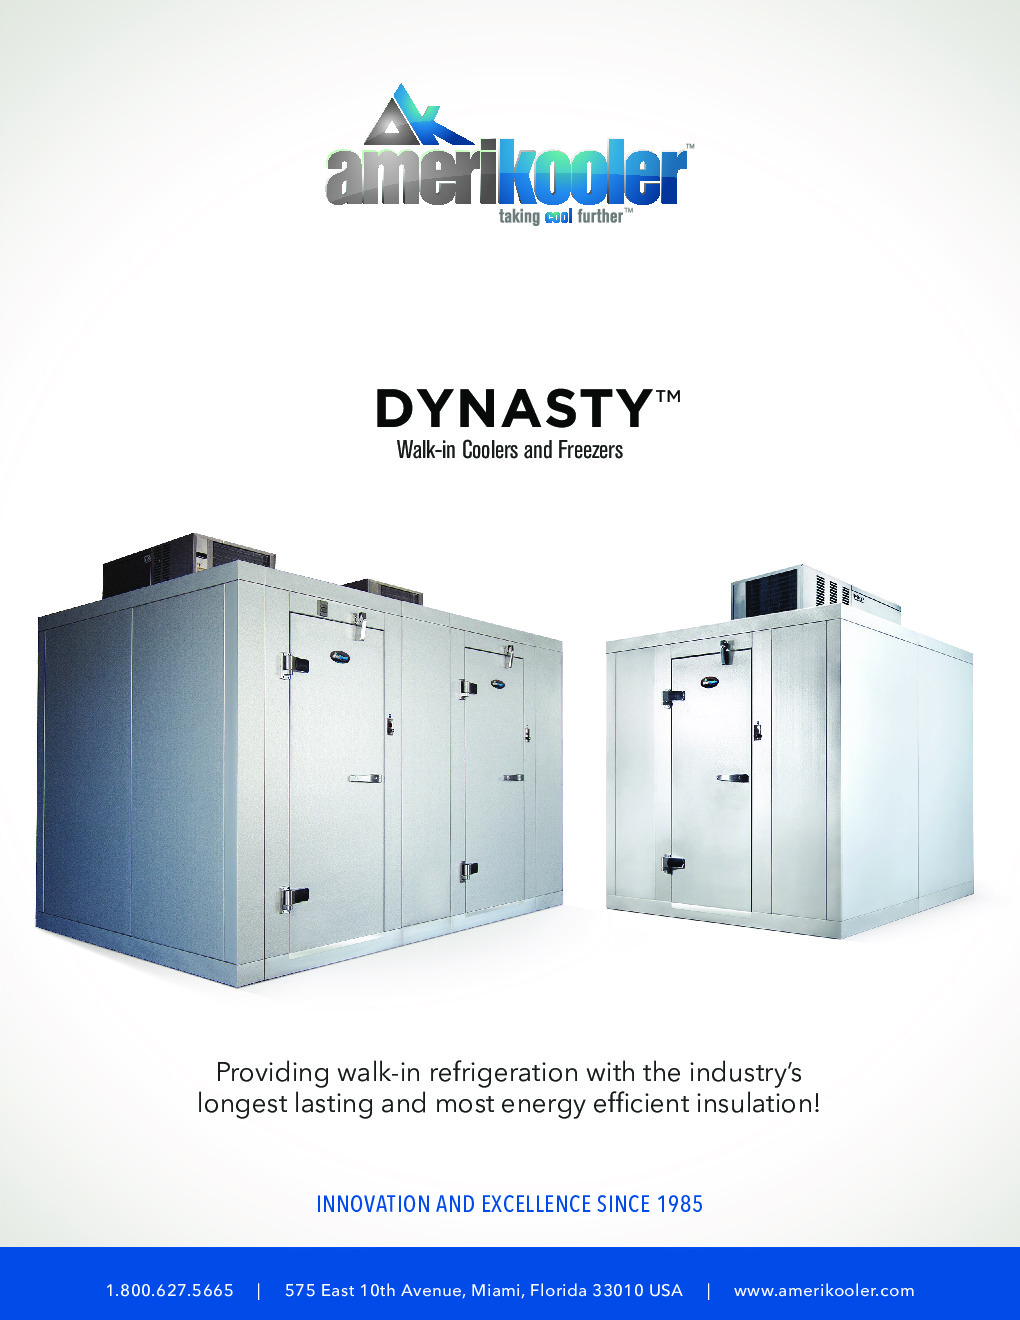 AmeriKooler DW071477N-7/7 Indoor 7' X 14' Walk-In, 7' L Cooler without Floor and 7' L Freezer, Box Only